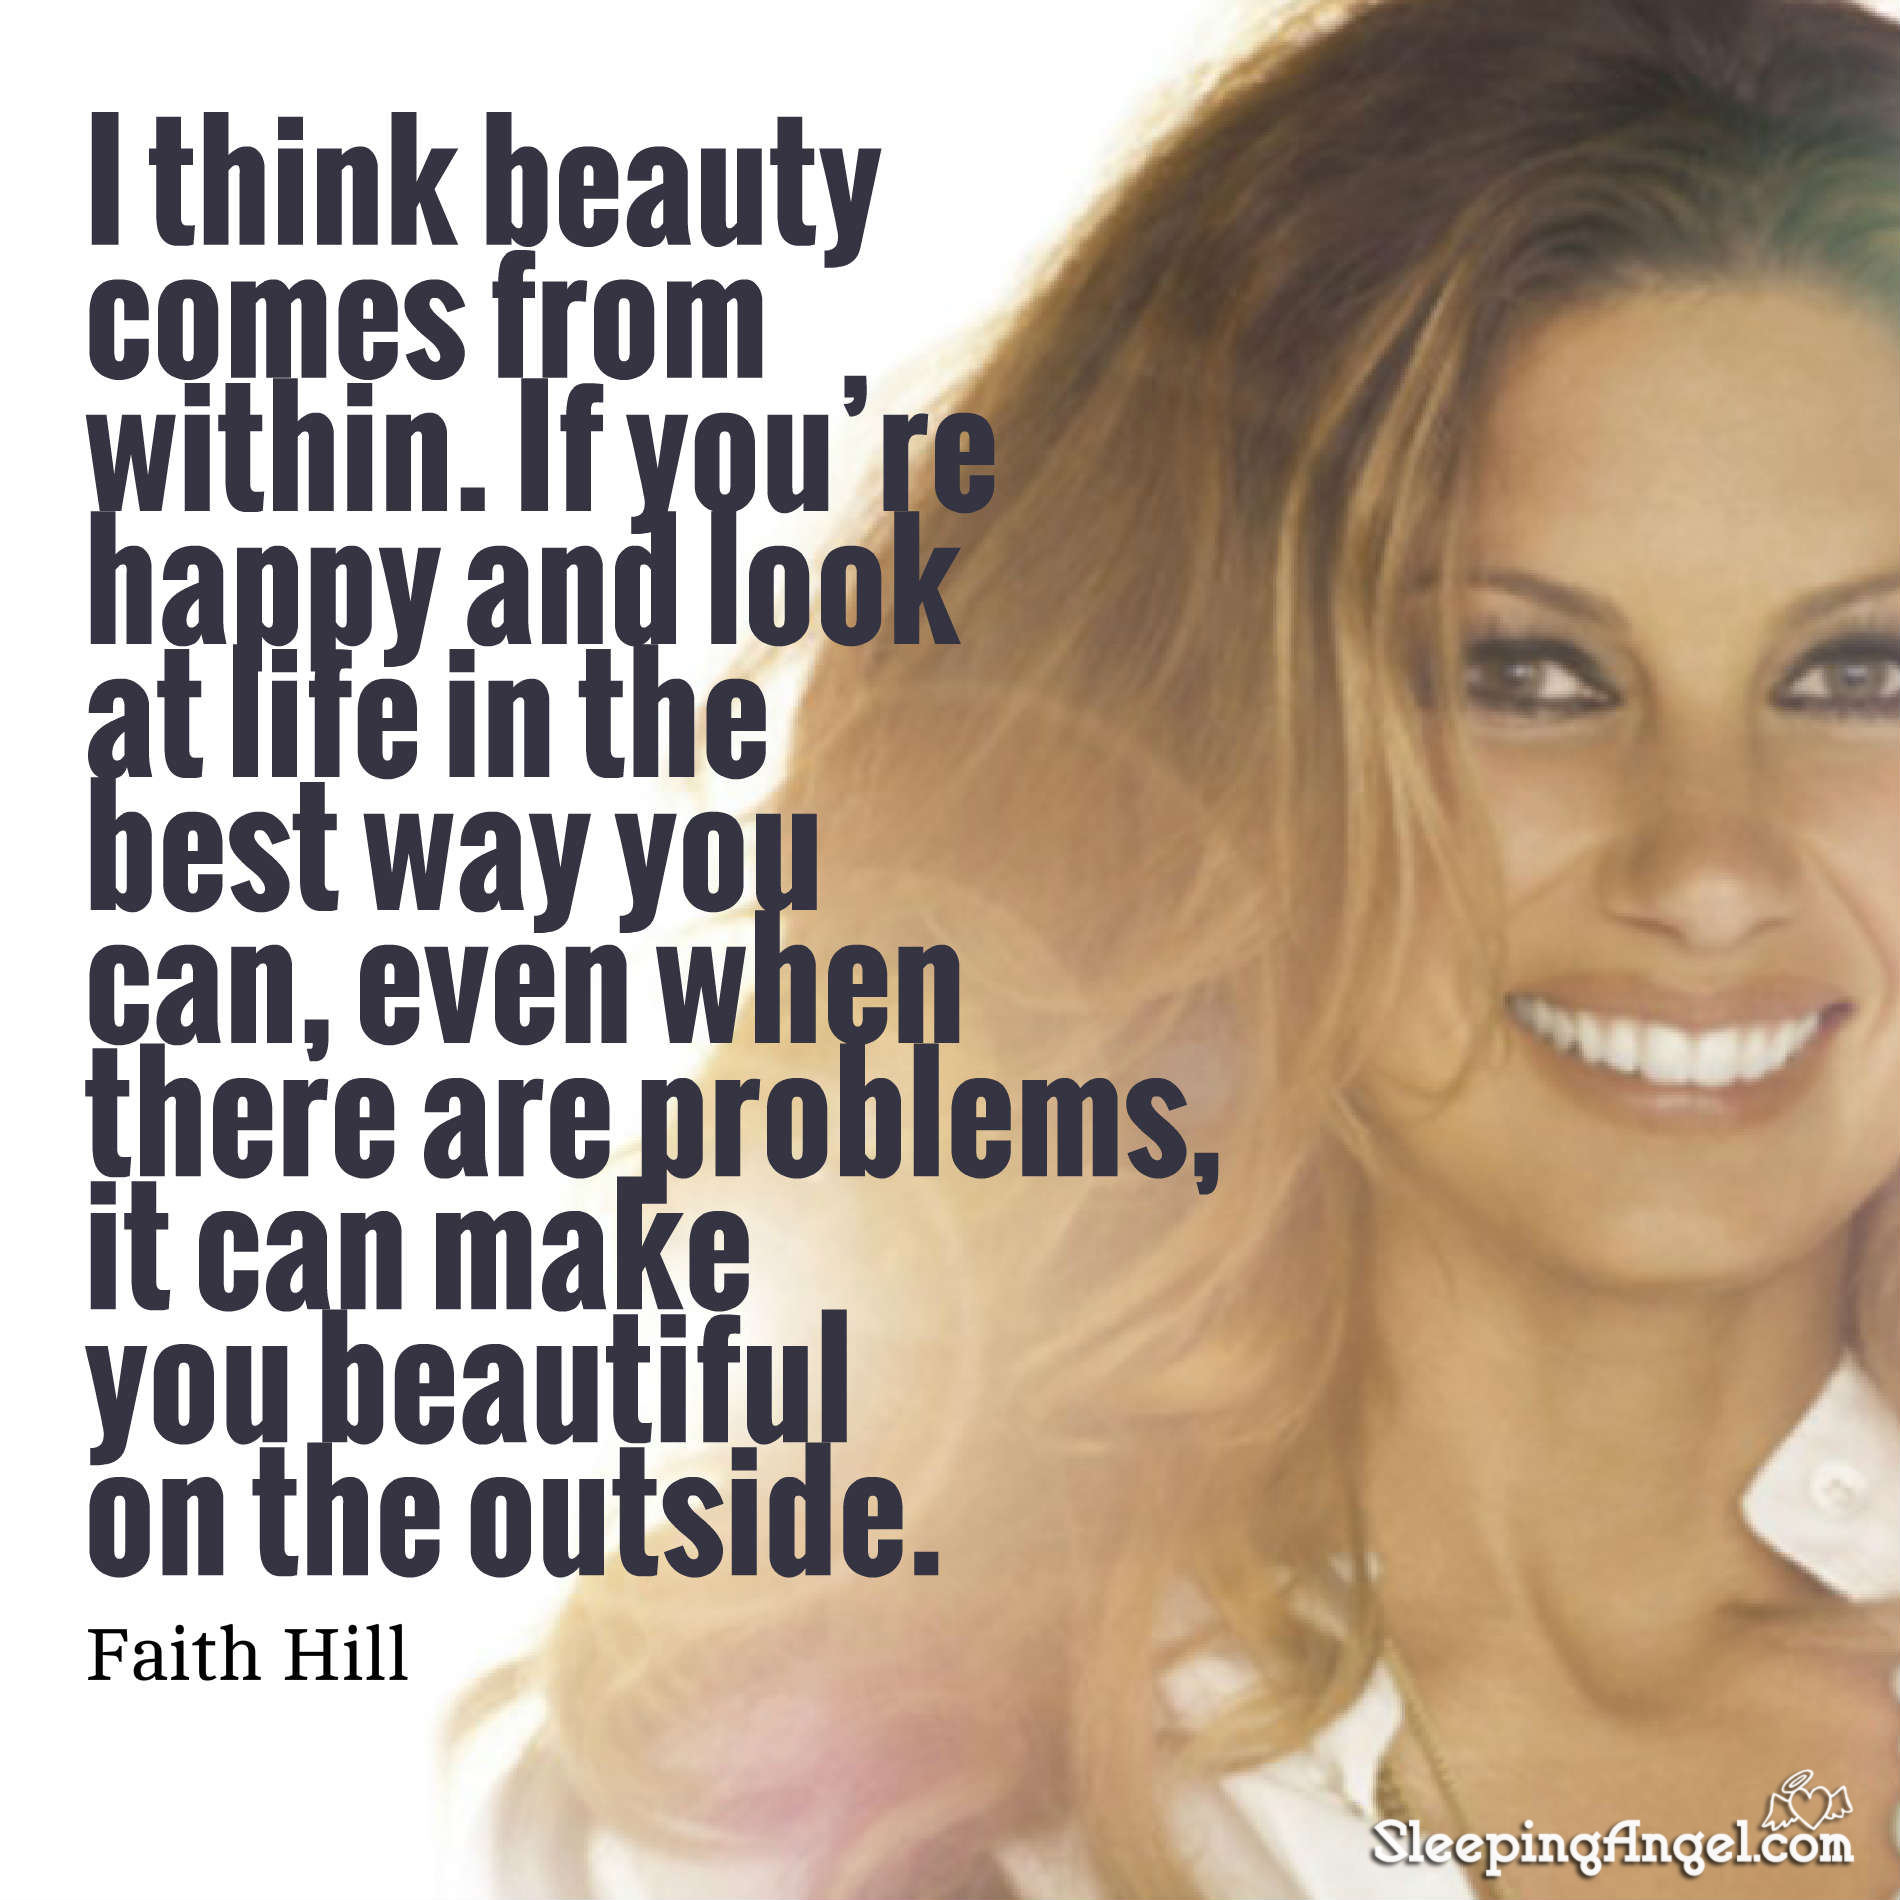 Faith Hill Quote